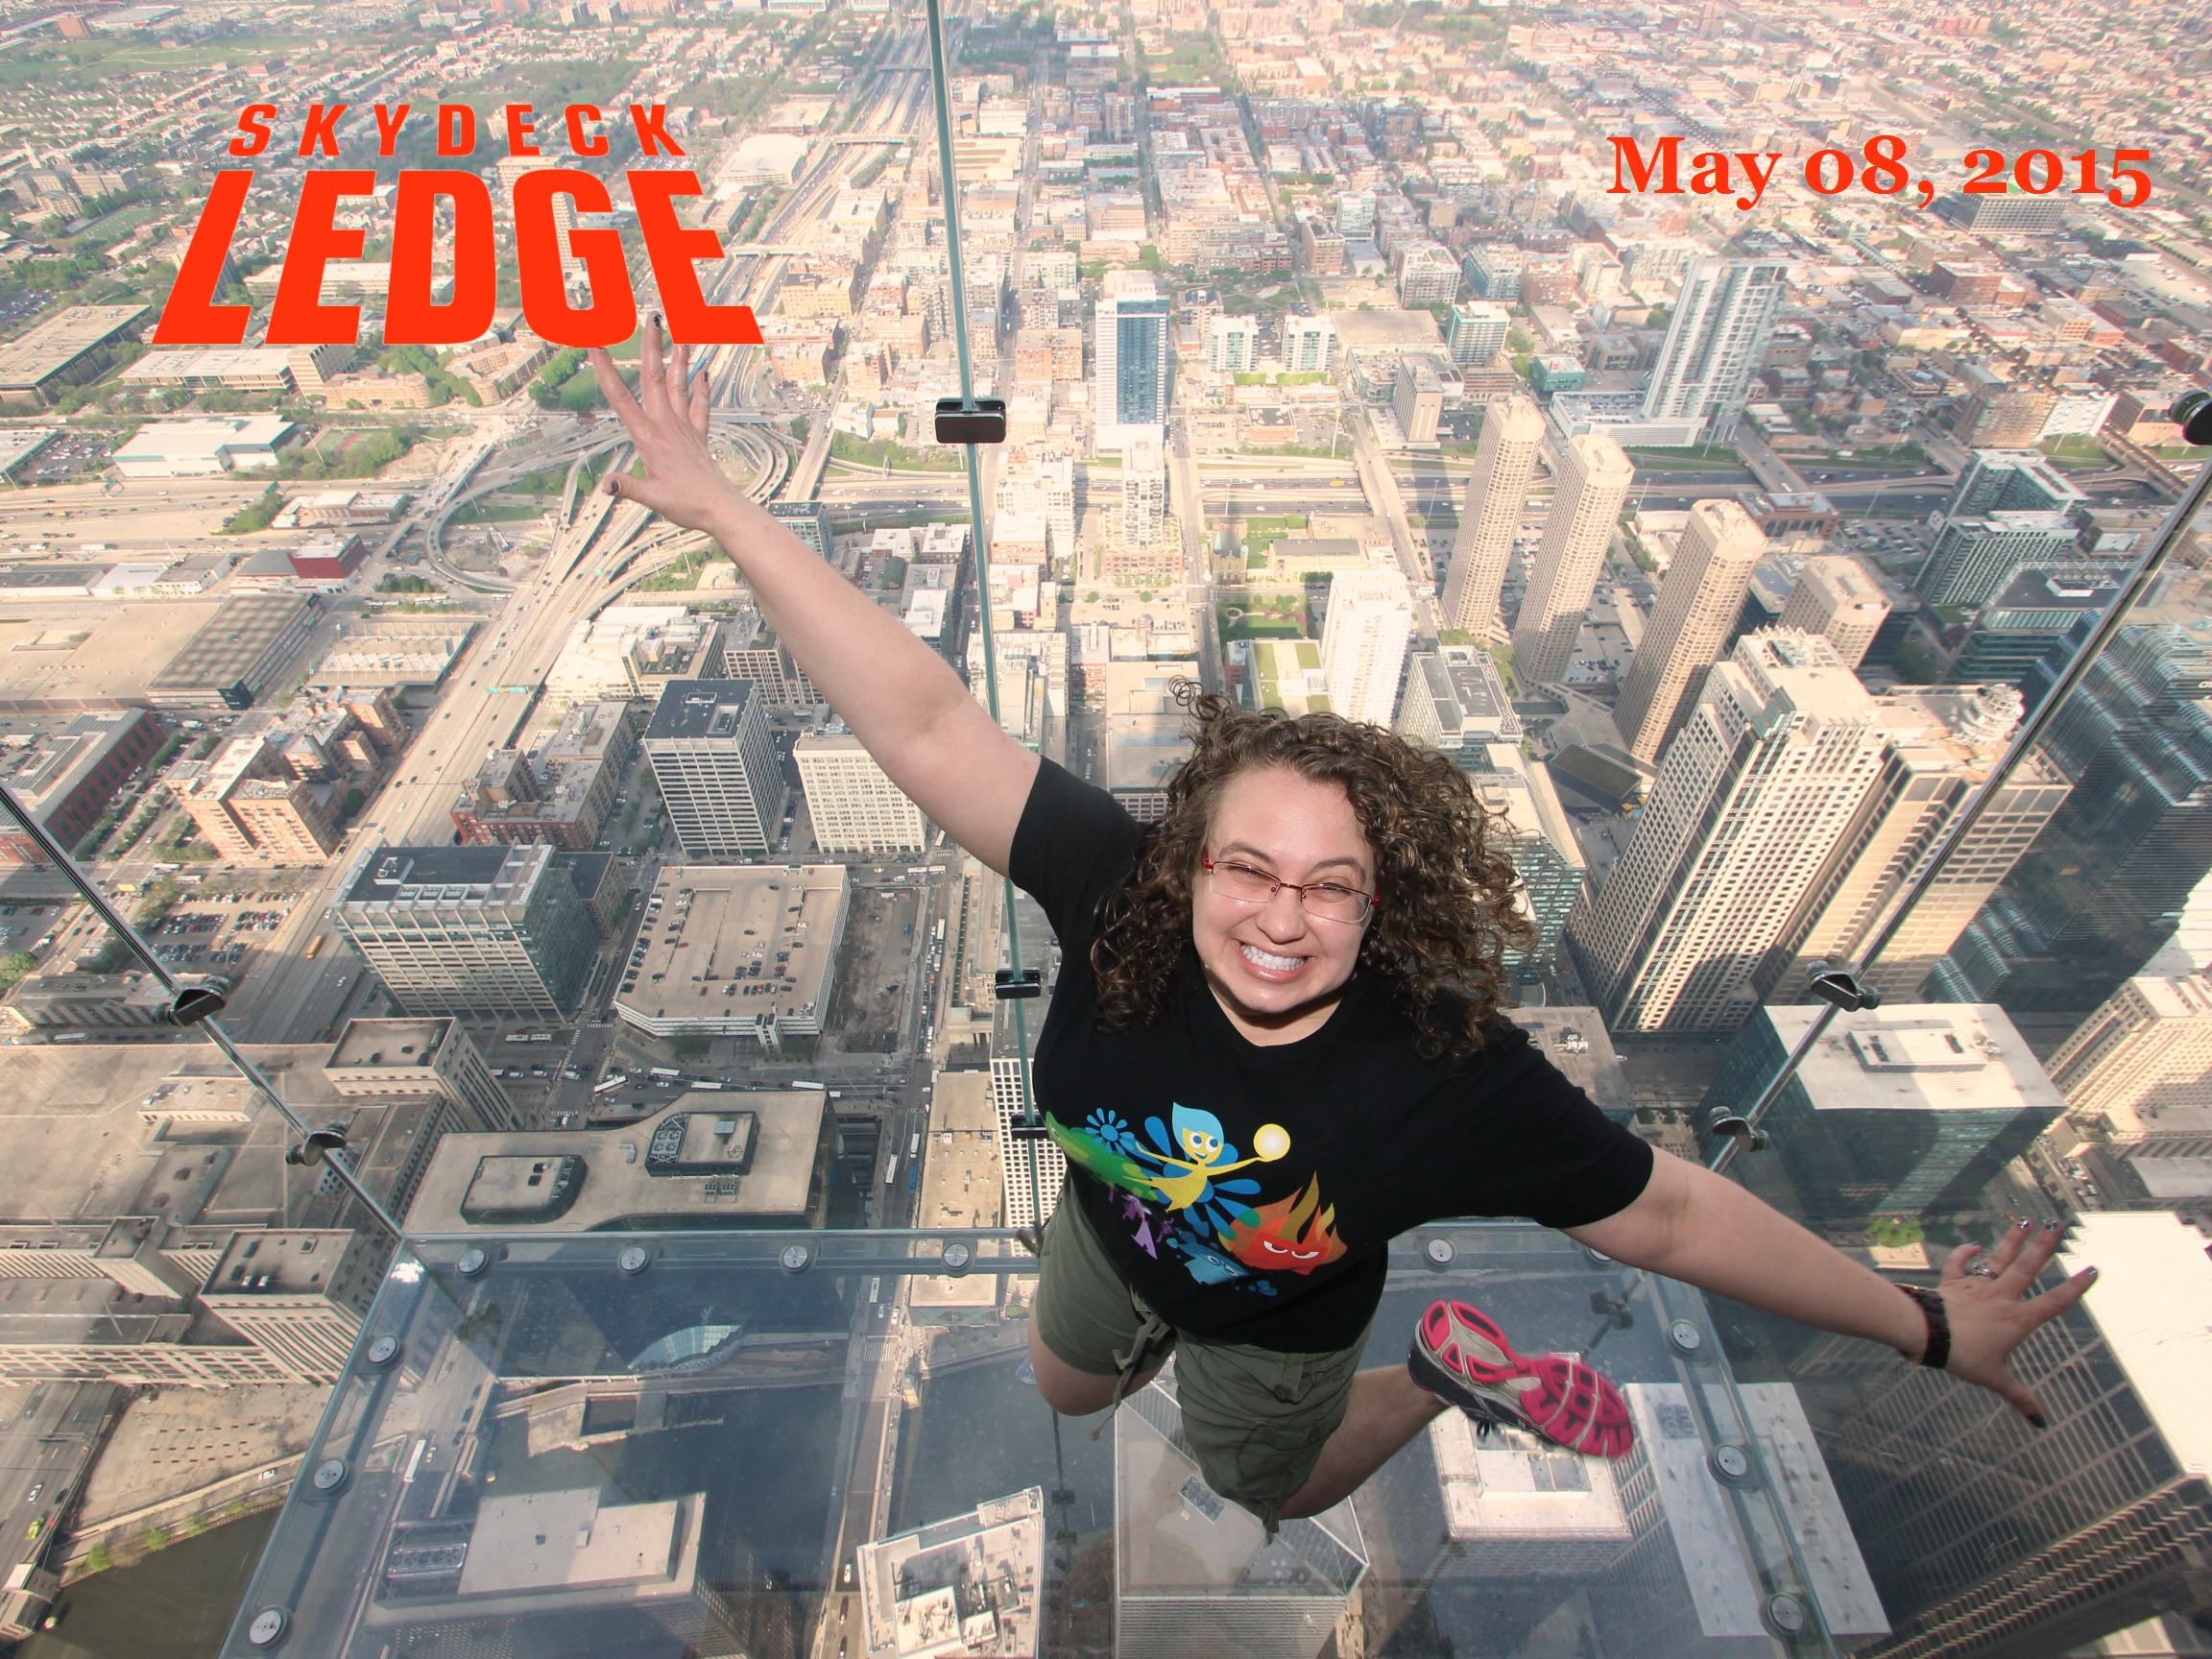 I'm on Top of the World Looking Down on Chicago - My Visit to the Skydeck Ledge